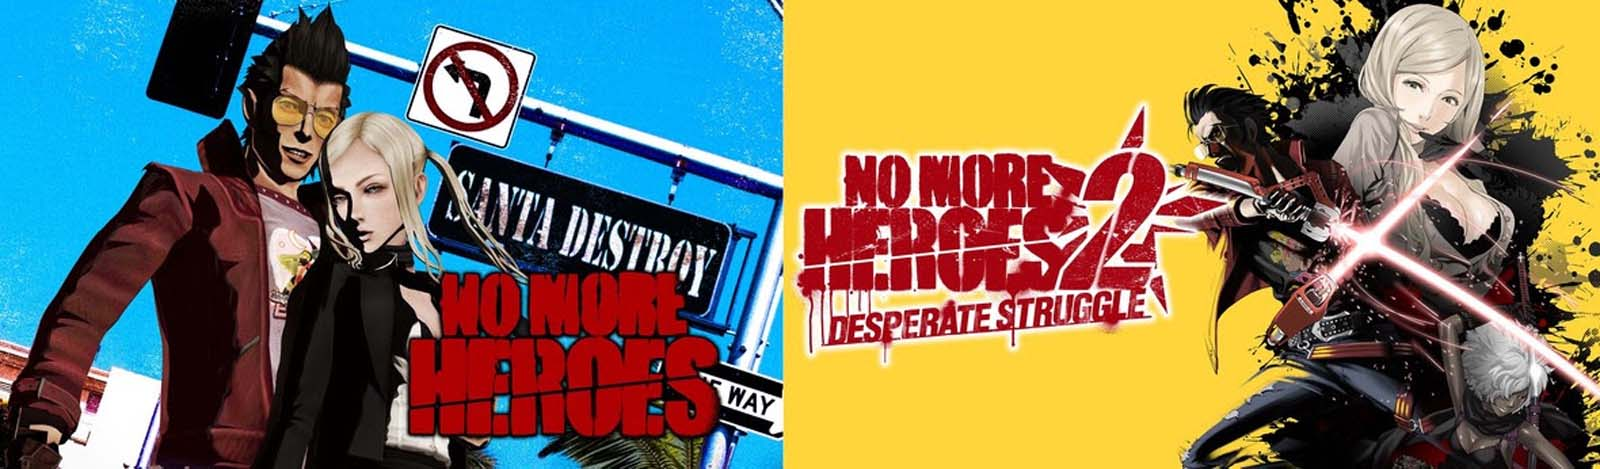 No More Heroes and No More Heroes 2 launching on Switch today! Surprise announcement